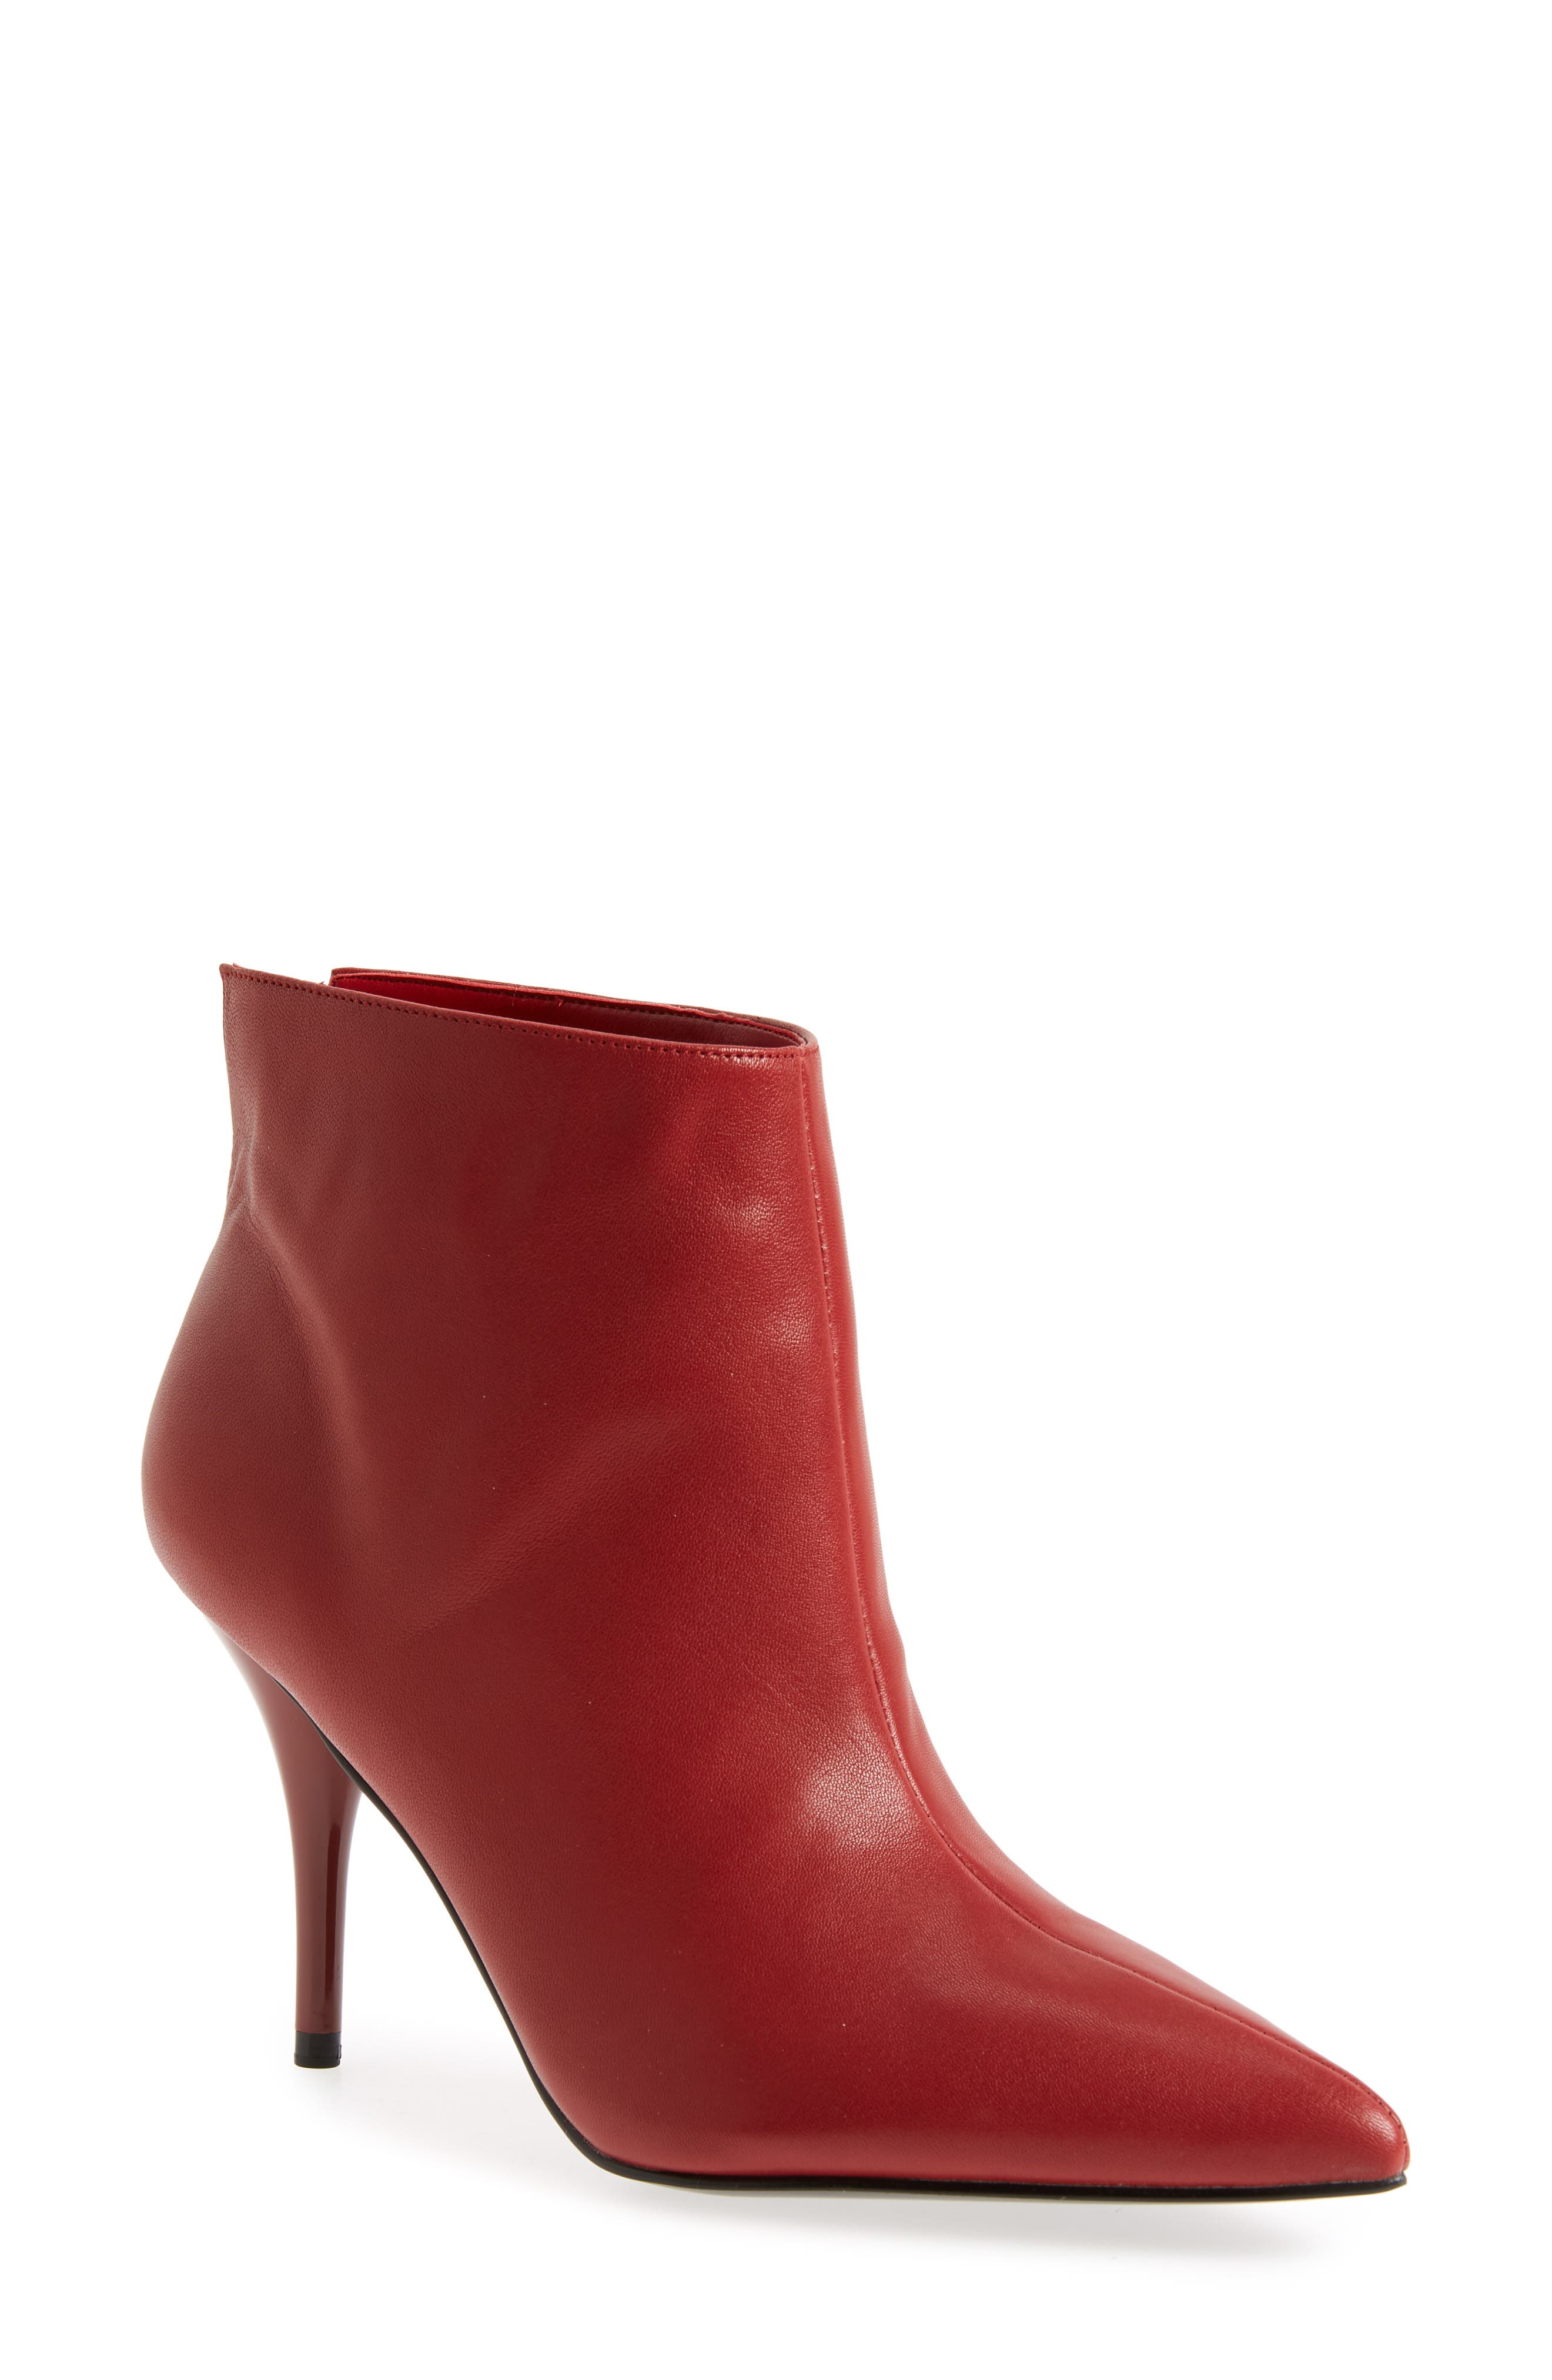 MARC FISHER LTD, Fenet Pointy Toe Bootie, Main thumbnail 1, color, RED LEATHER